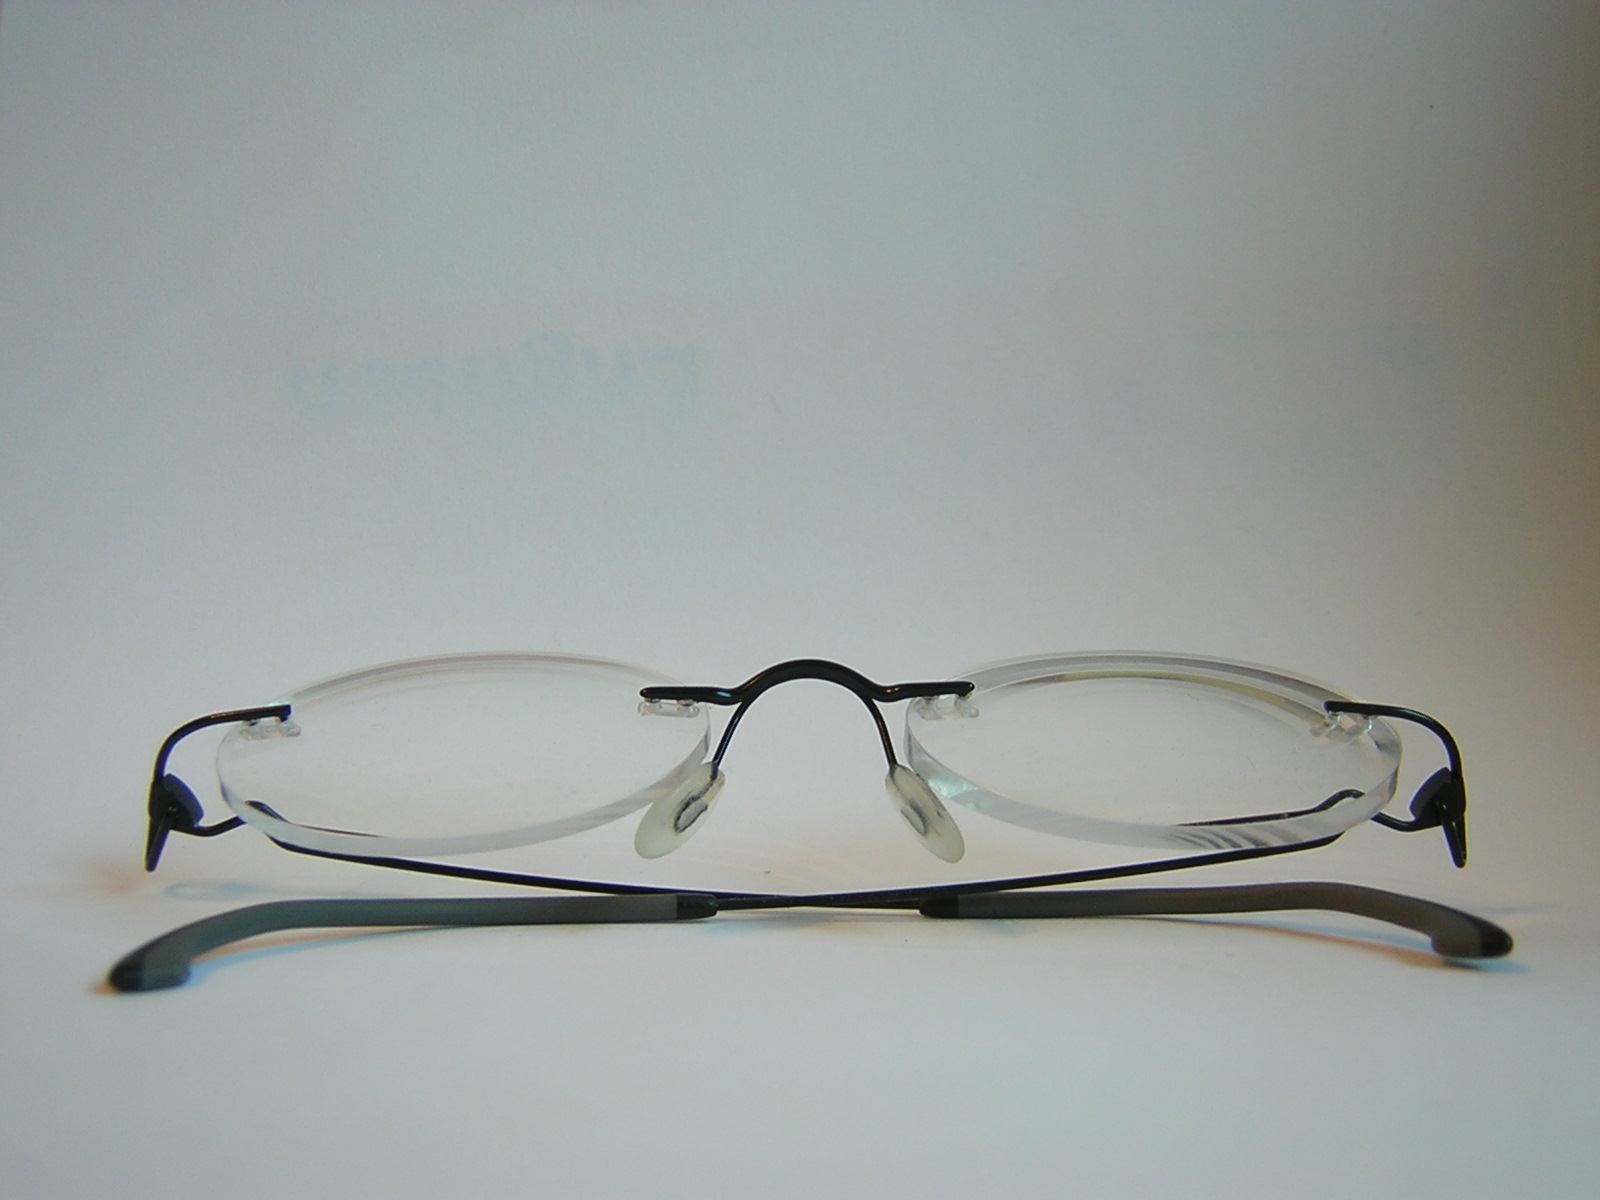 Eyeglasses With No Bottom Frame : File:No frame glasses.JPG - Wikimedia Commons